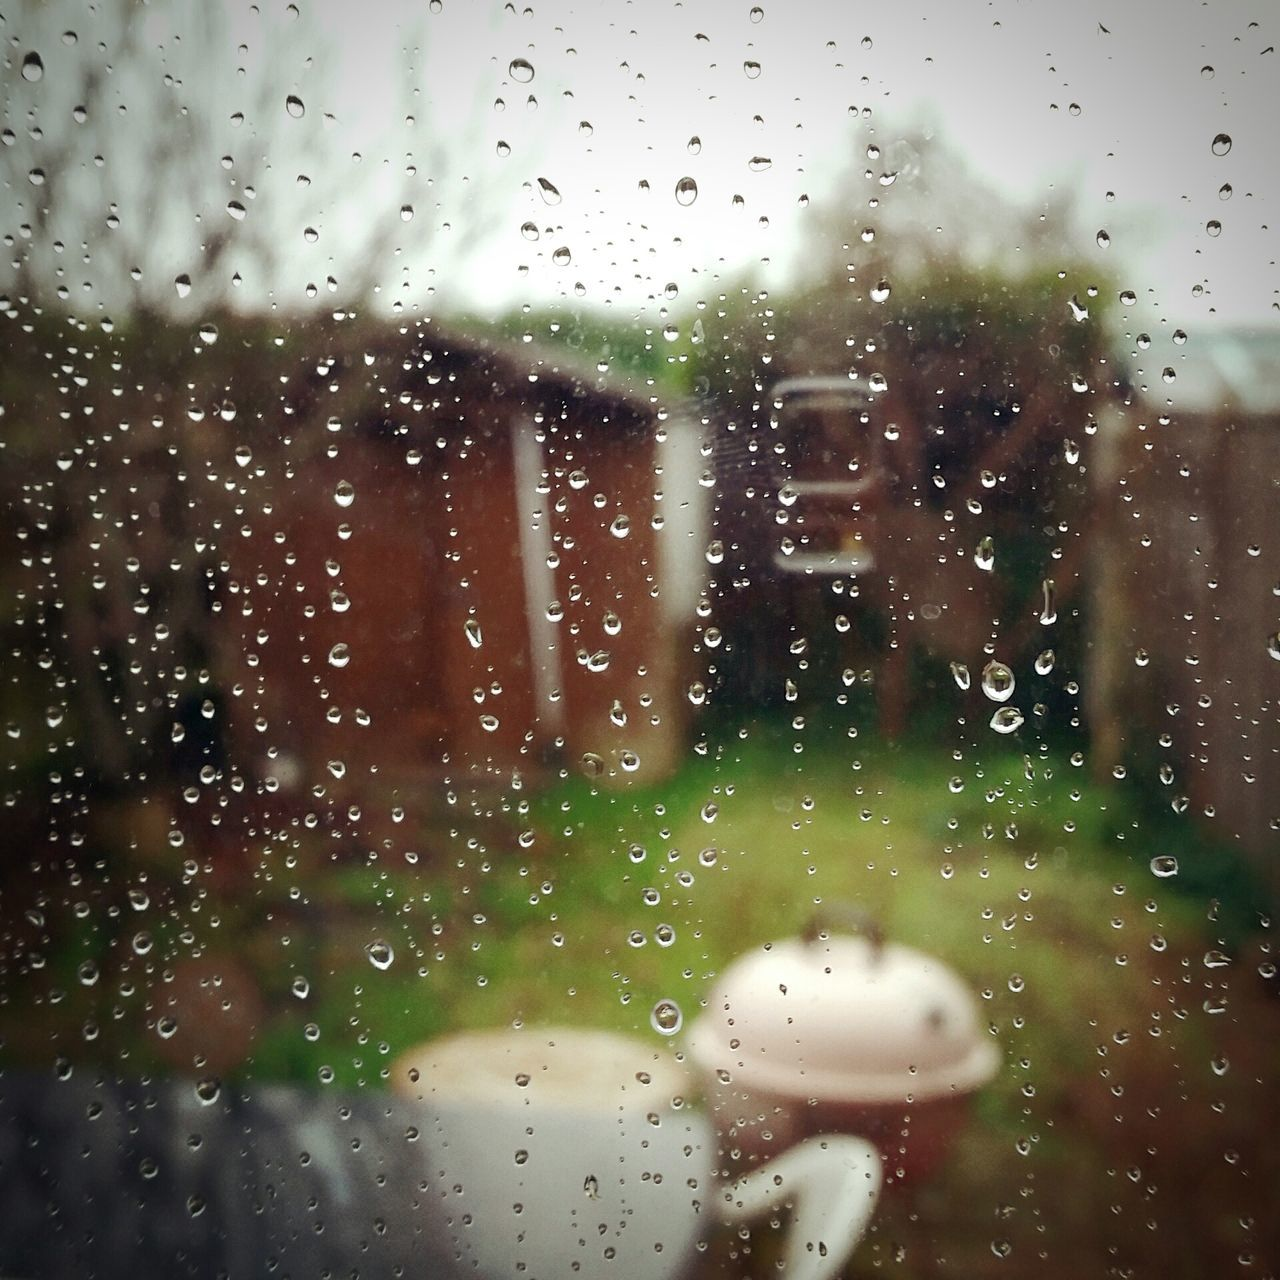 Rain Raindrops Rainy Days Dorset Dorsetlandscape Dorsetlife Poole, Dorset Poole Pooleharbour England Anglia English English Countryside Bournemouth First Eyeem Photo